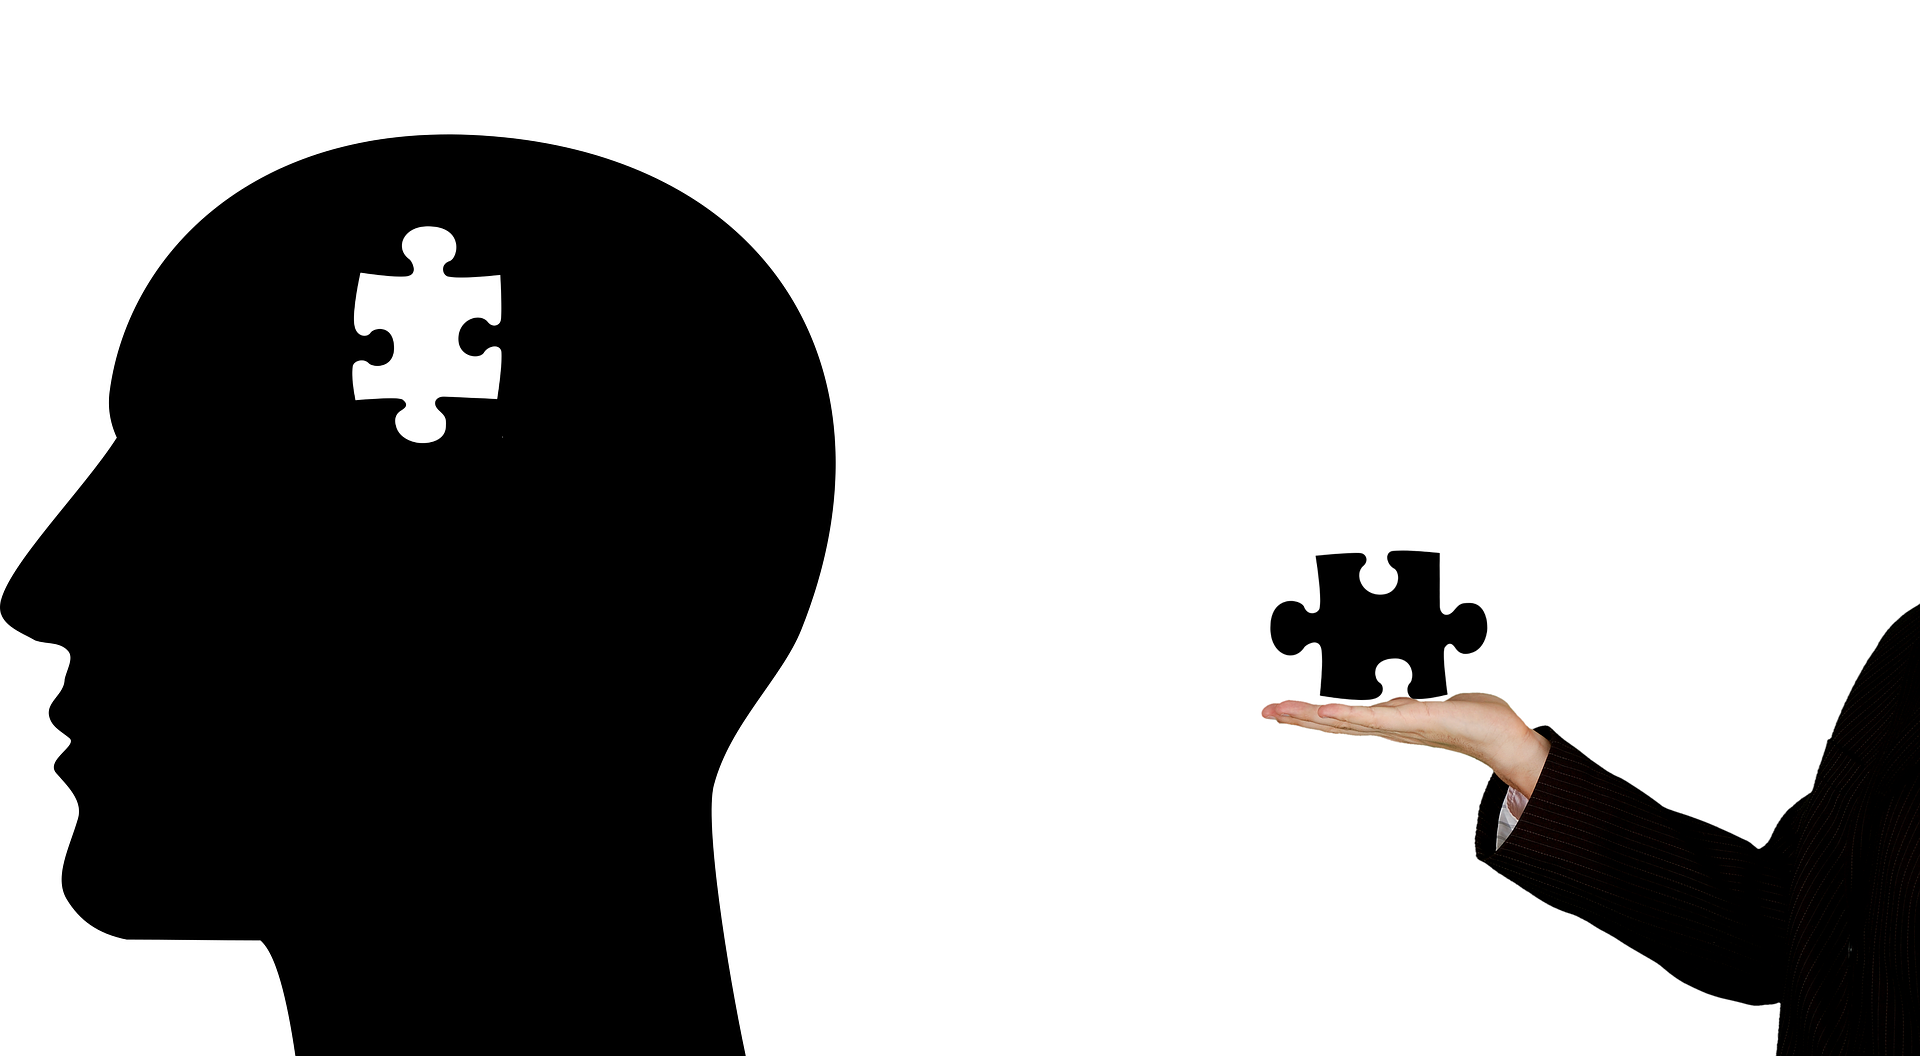 A person reaches to fit a puzzle piece in a cartoon head with a missing piece. Photo courtesy of Tumisu on Pixabay.